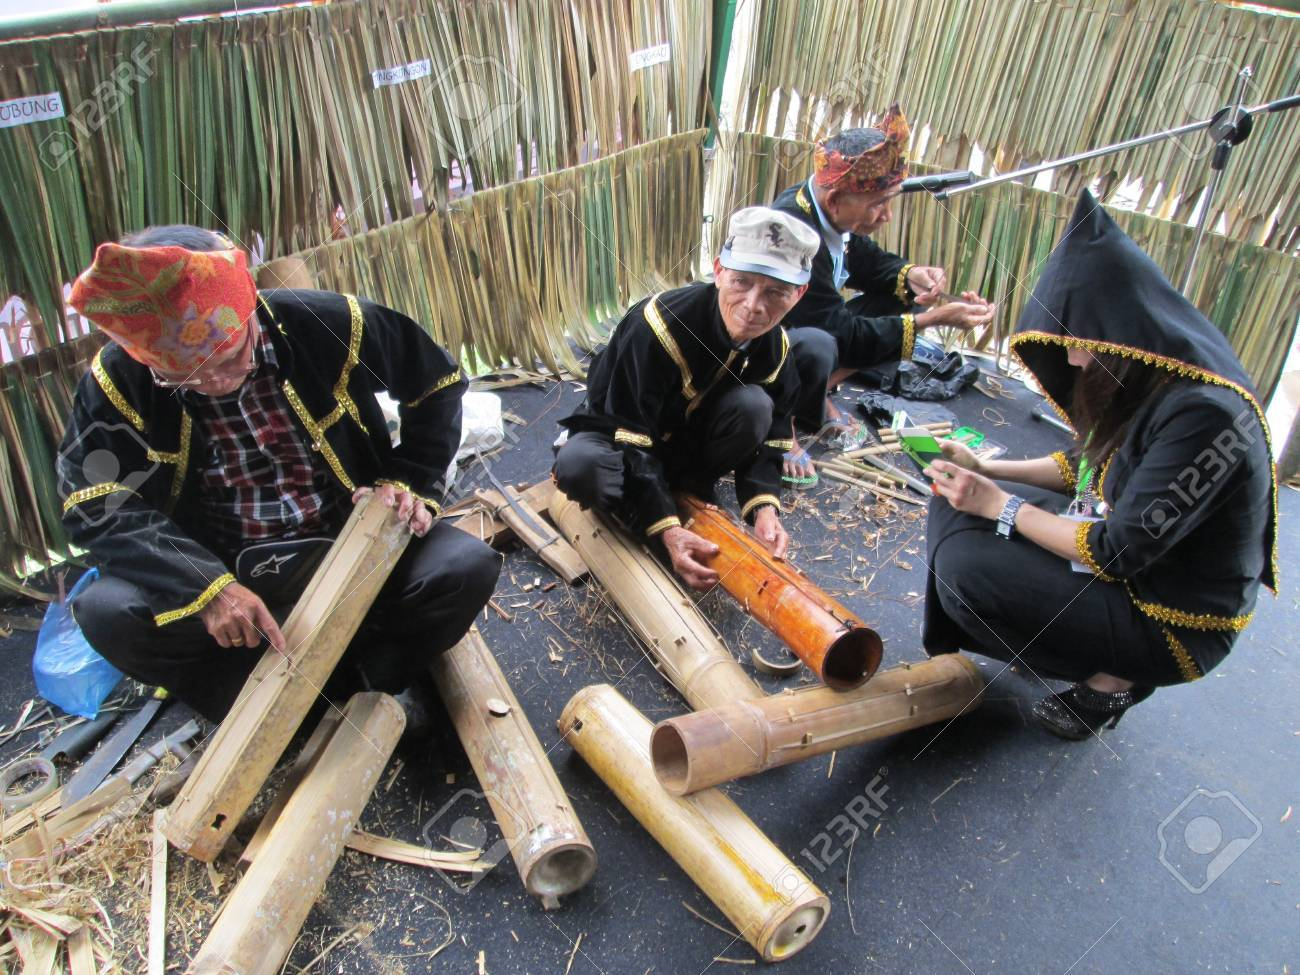 The music instruments maker in Sabah during the Harvest Festival